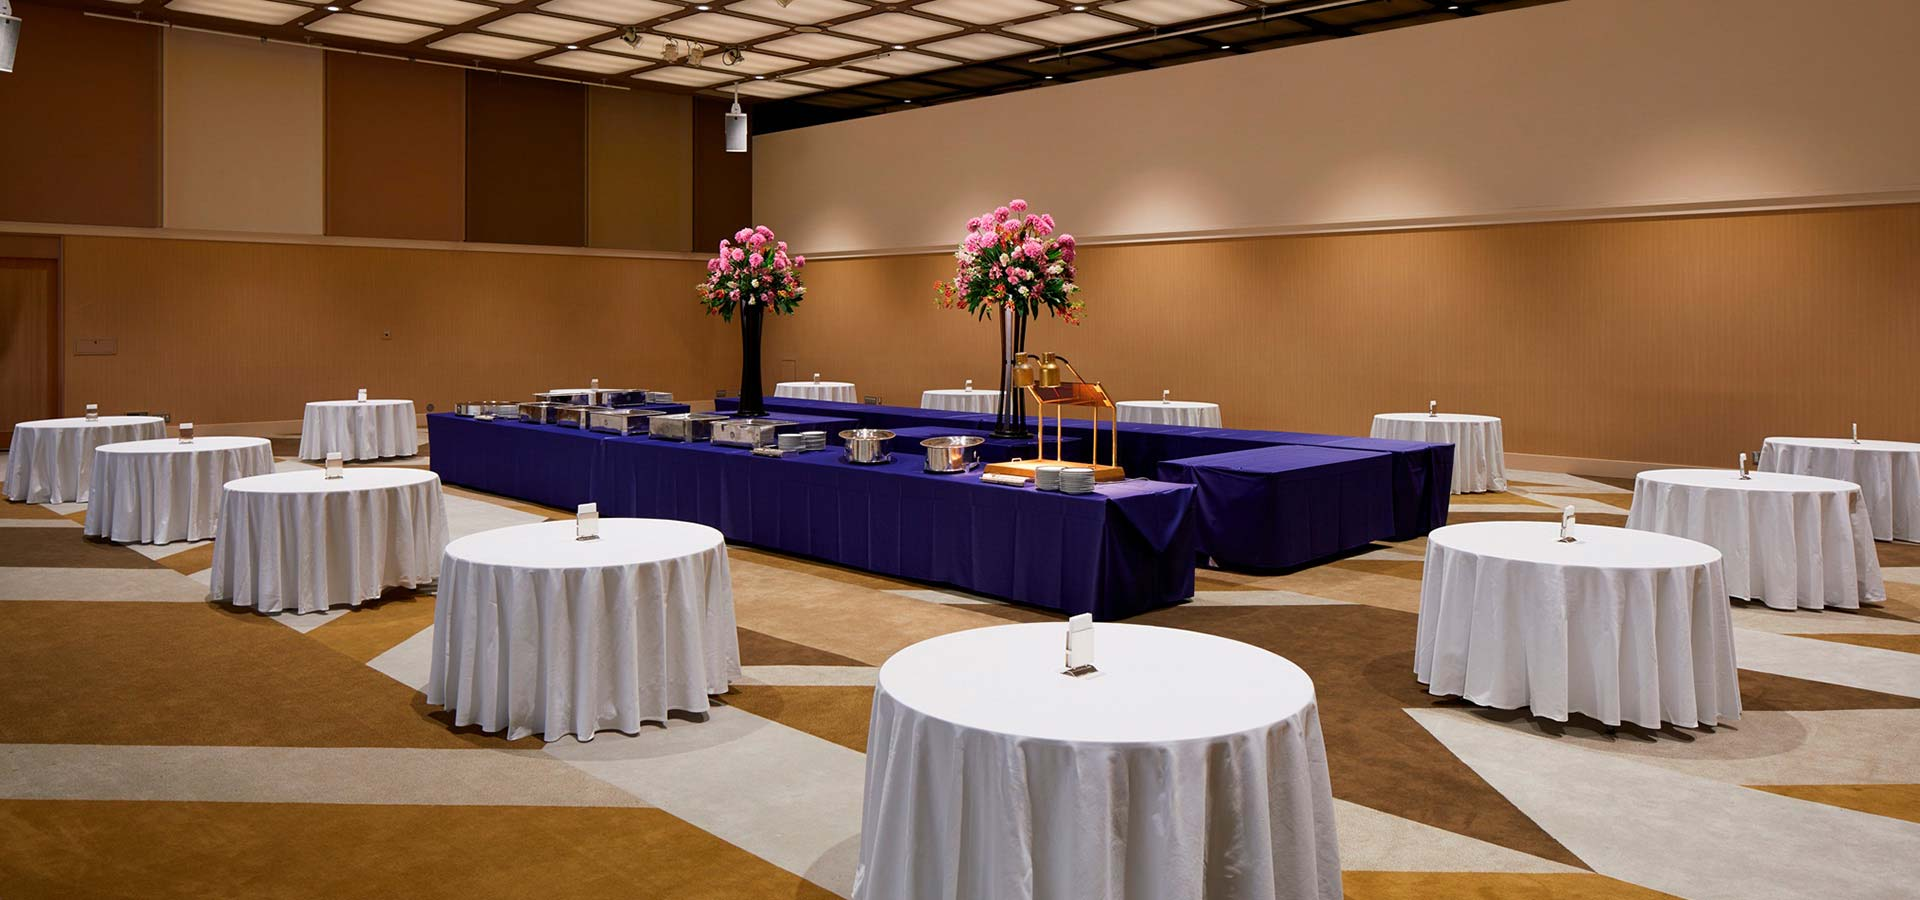 國際宴會廳MAIN BANQUET HALL